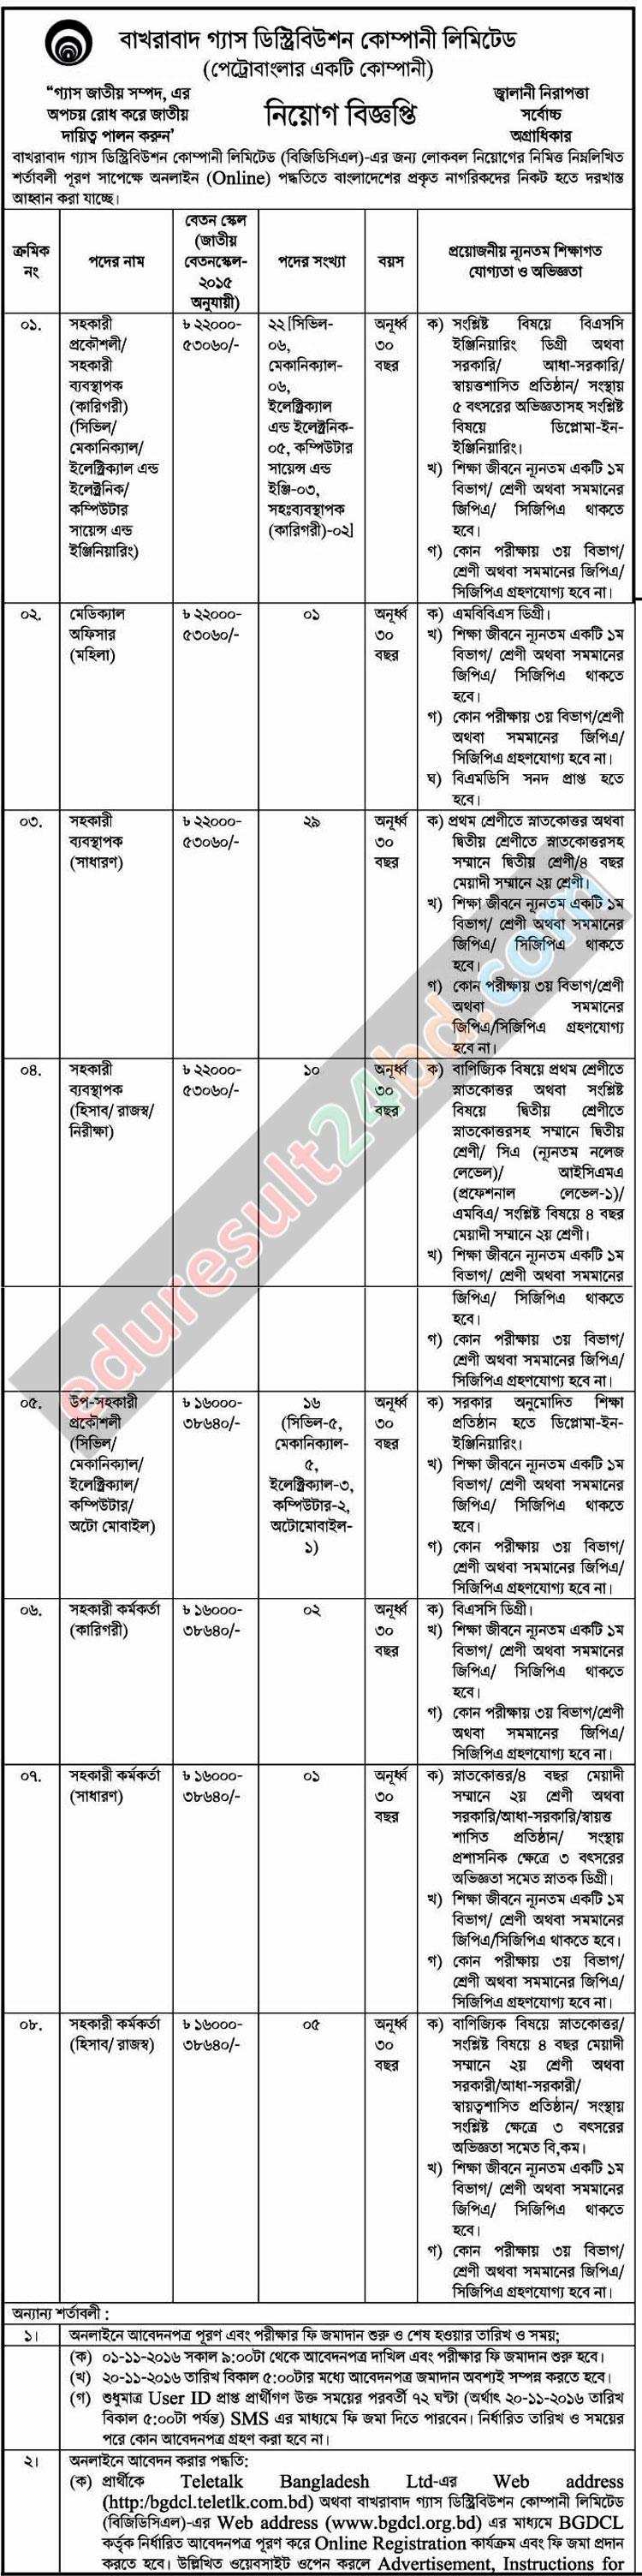 Bakhrabad Gas Distribution Company Job Circular